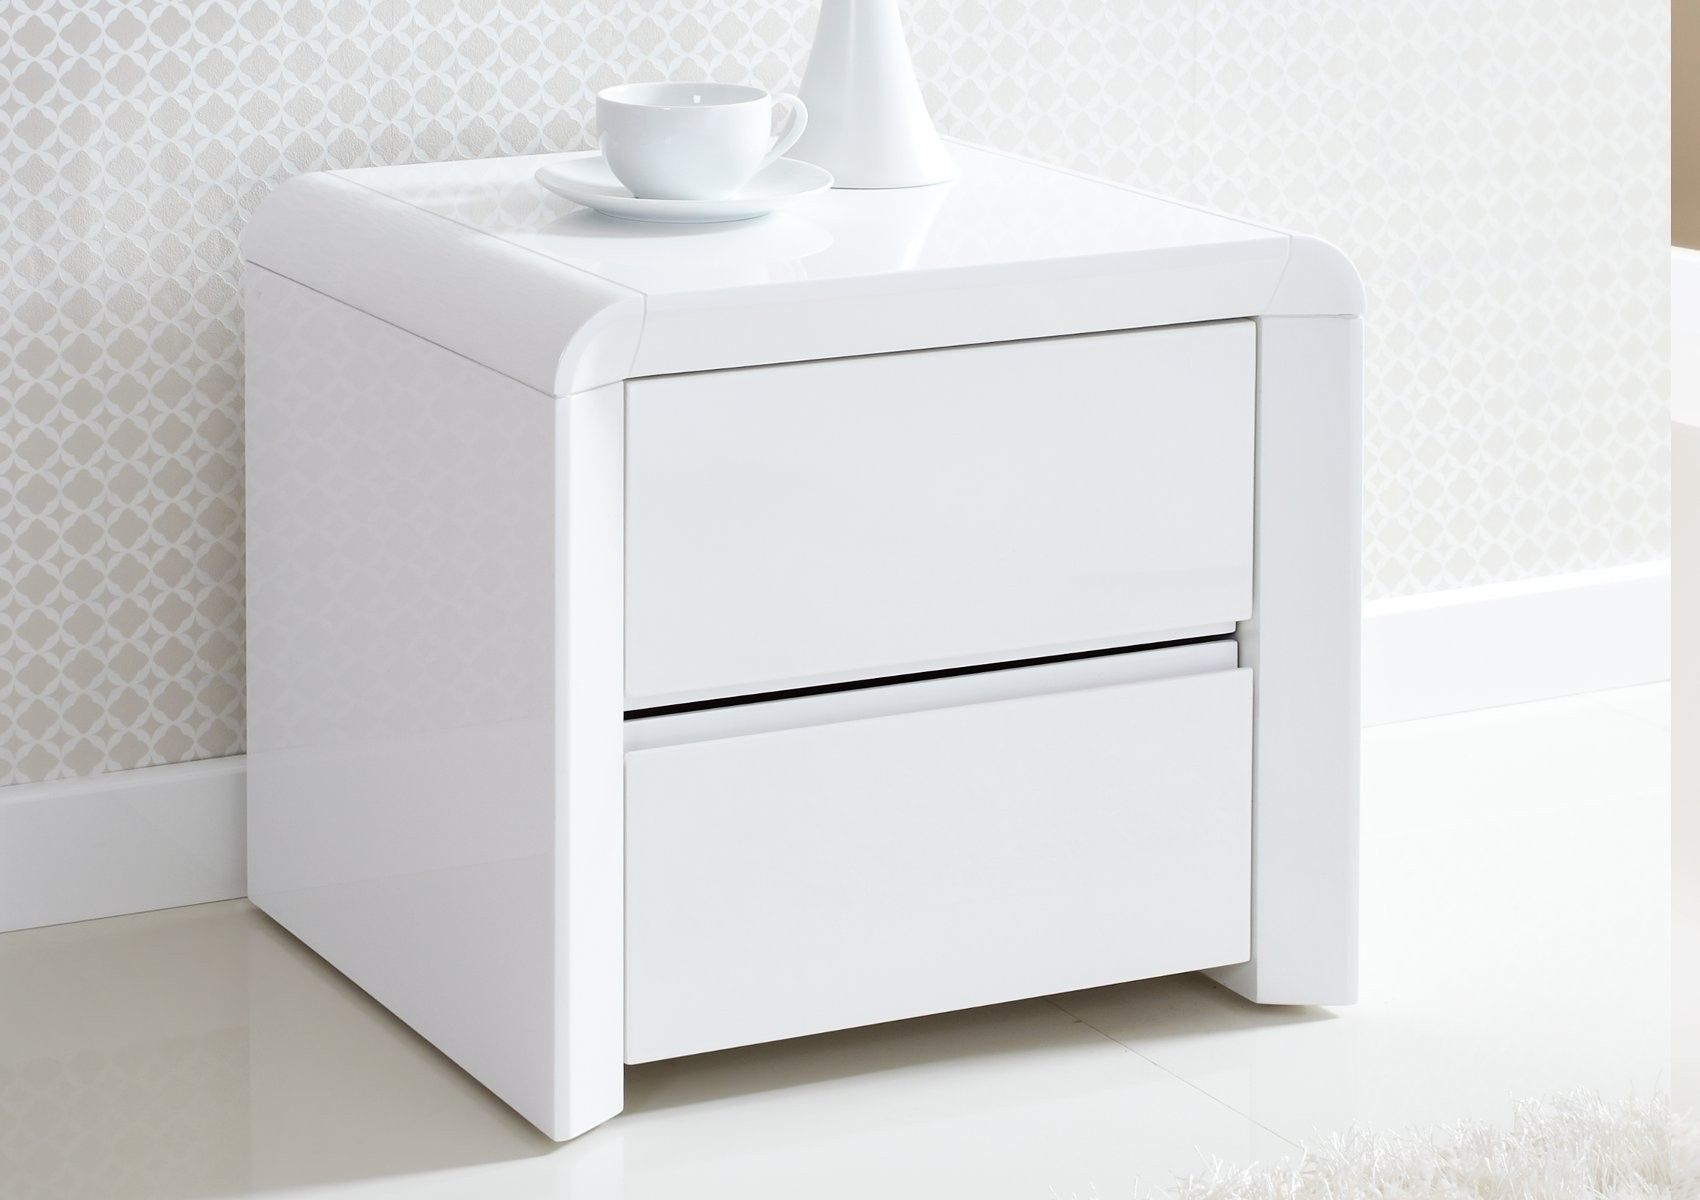 Jacks Room Ice High Gloss 2 Drawer Bedside White To Match Dressing Table Reduced